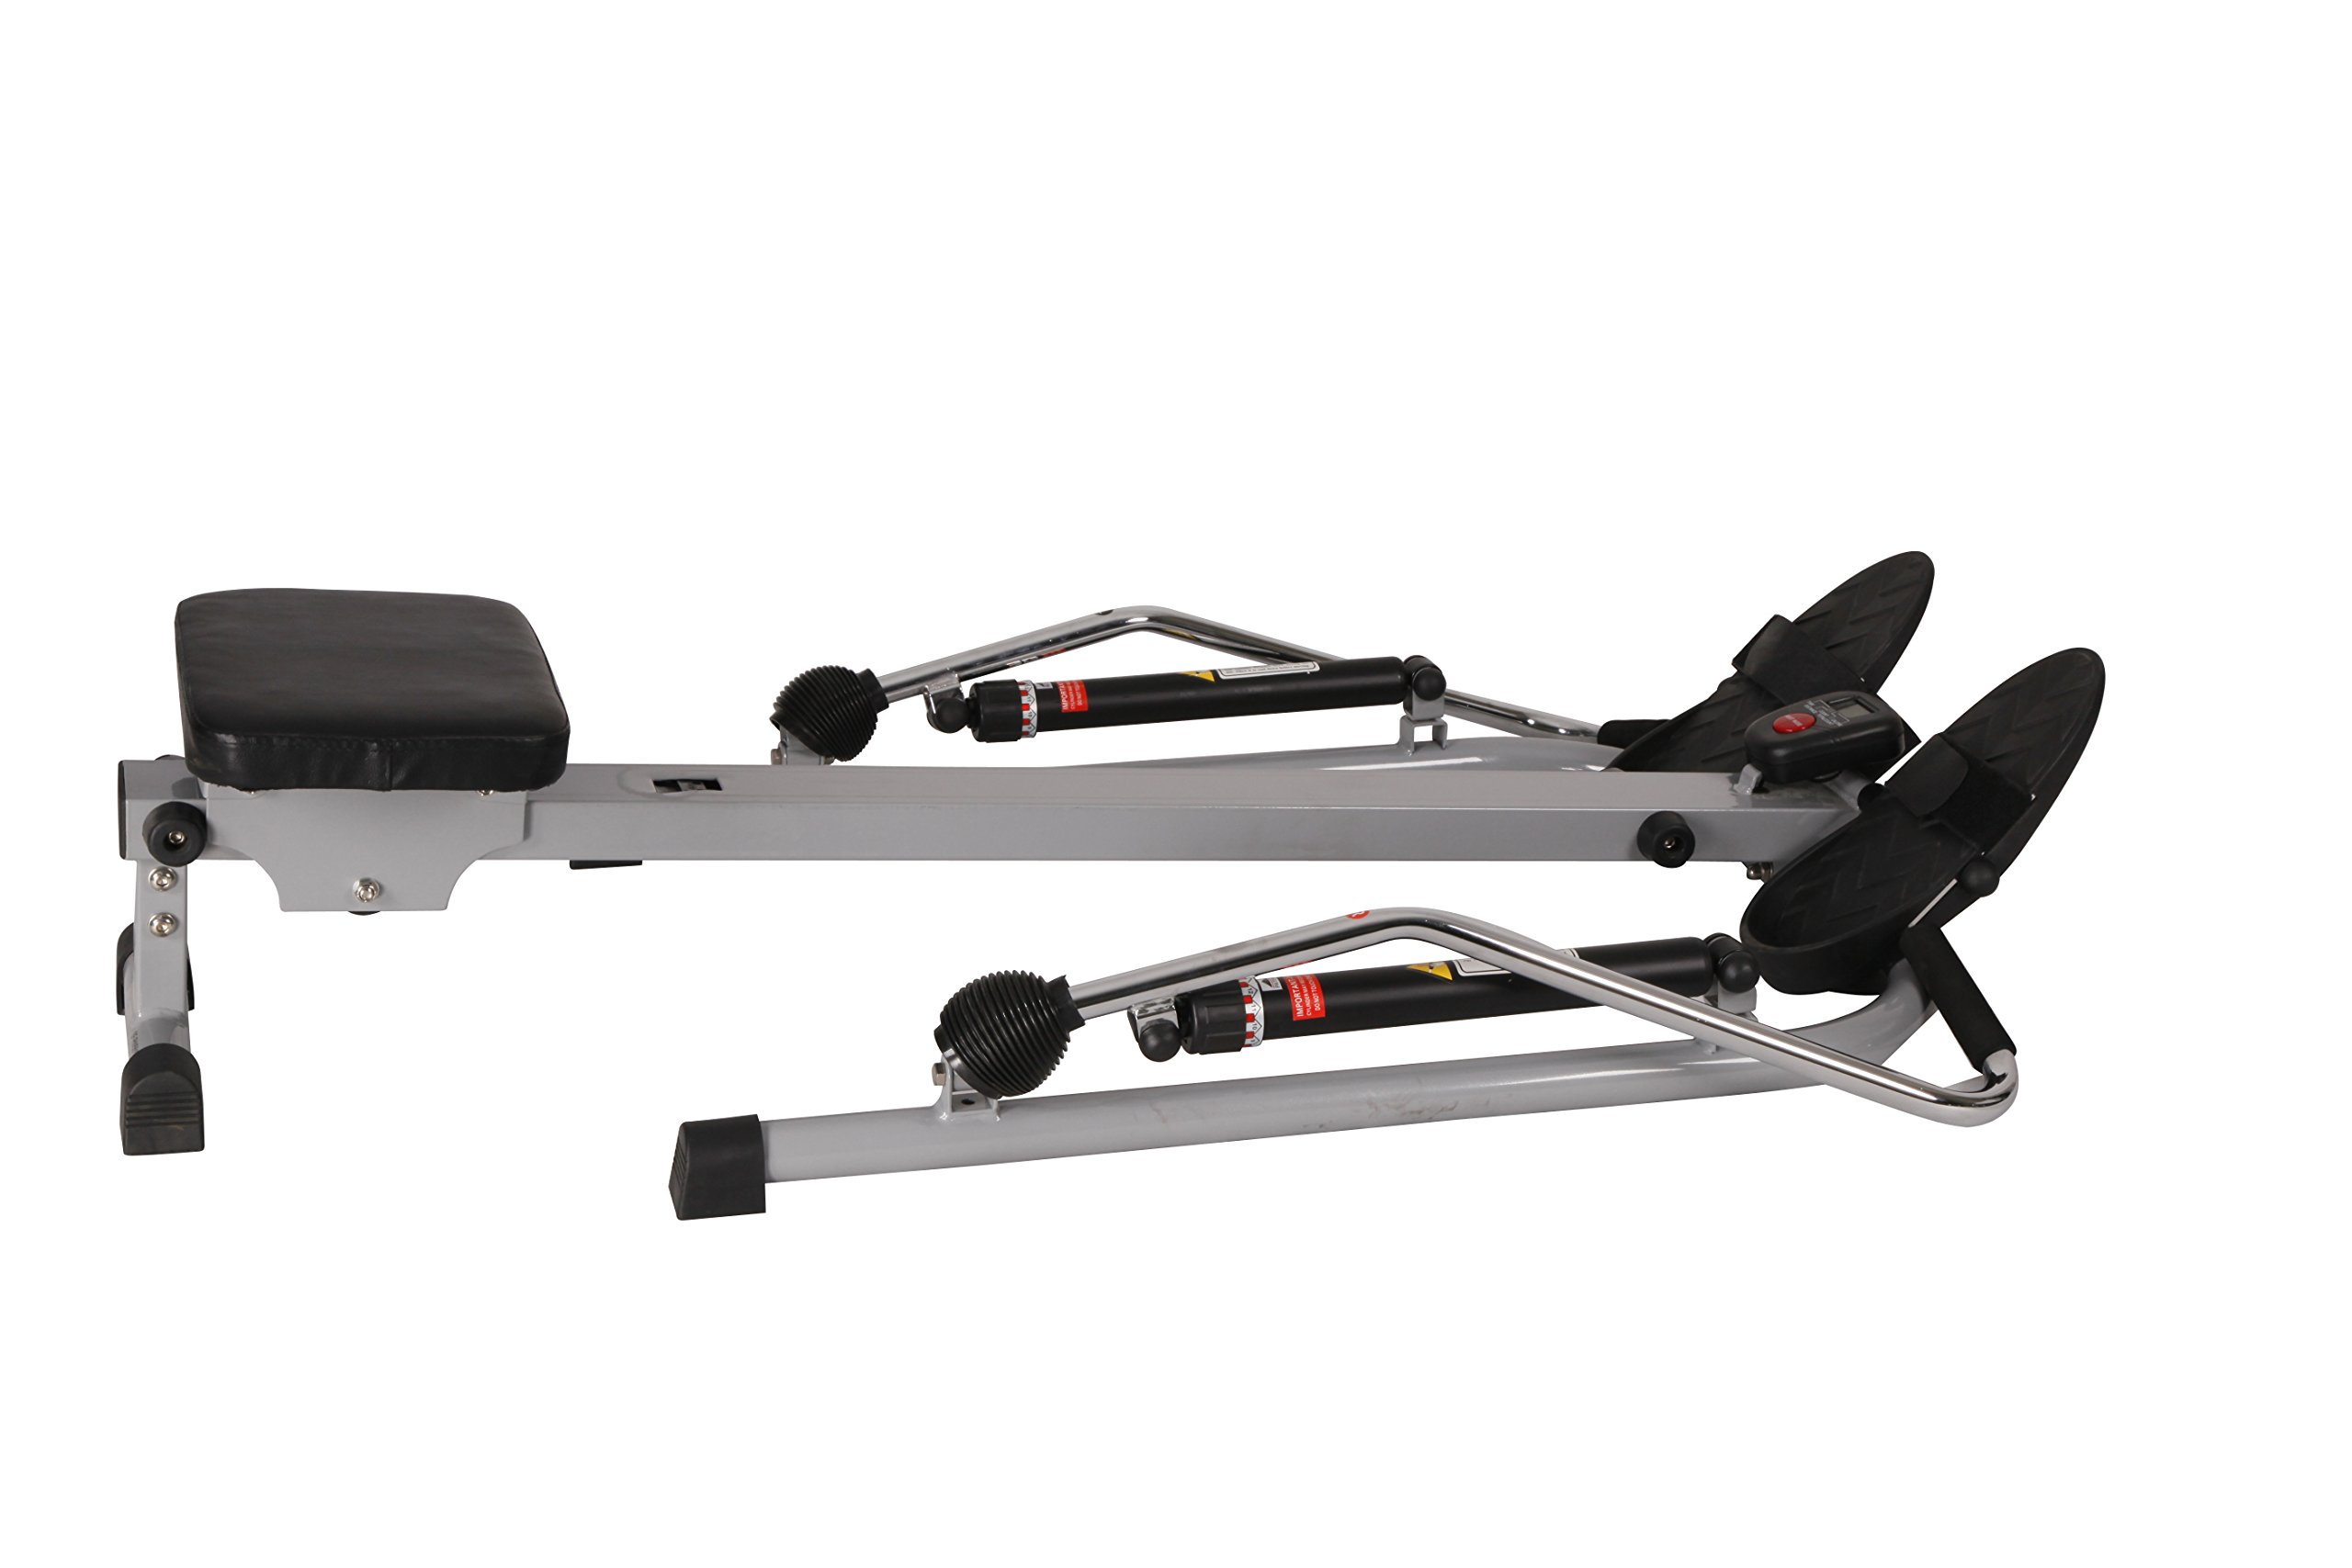 Sunny Health & Fitness SF-RW5619 12 Level Resistance Rowing Machine Rower w/ Independent Arms by Sunny Health & Fitness (Image #3)